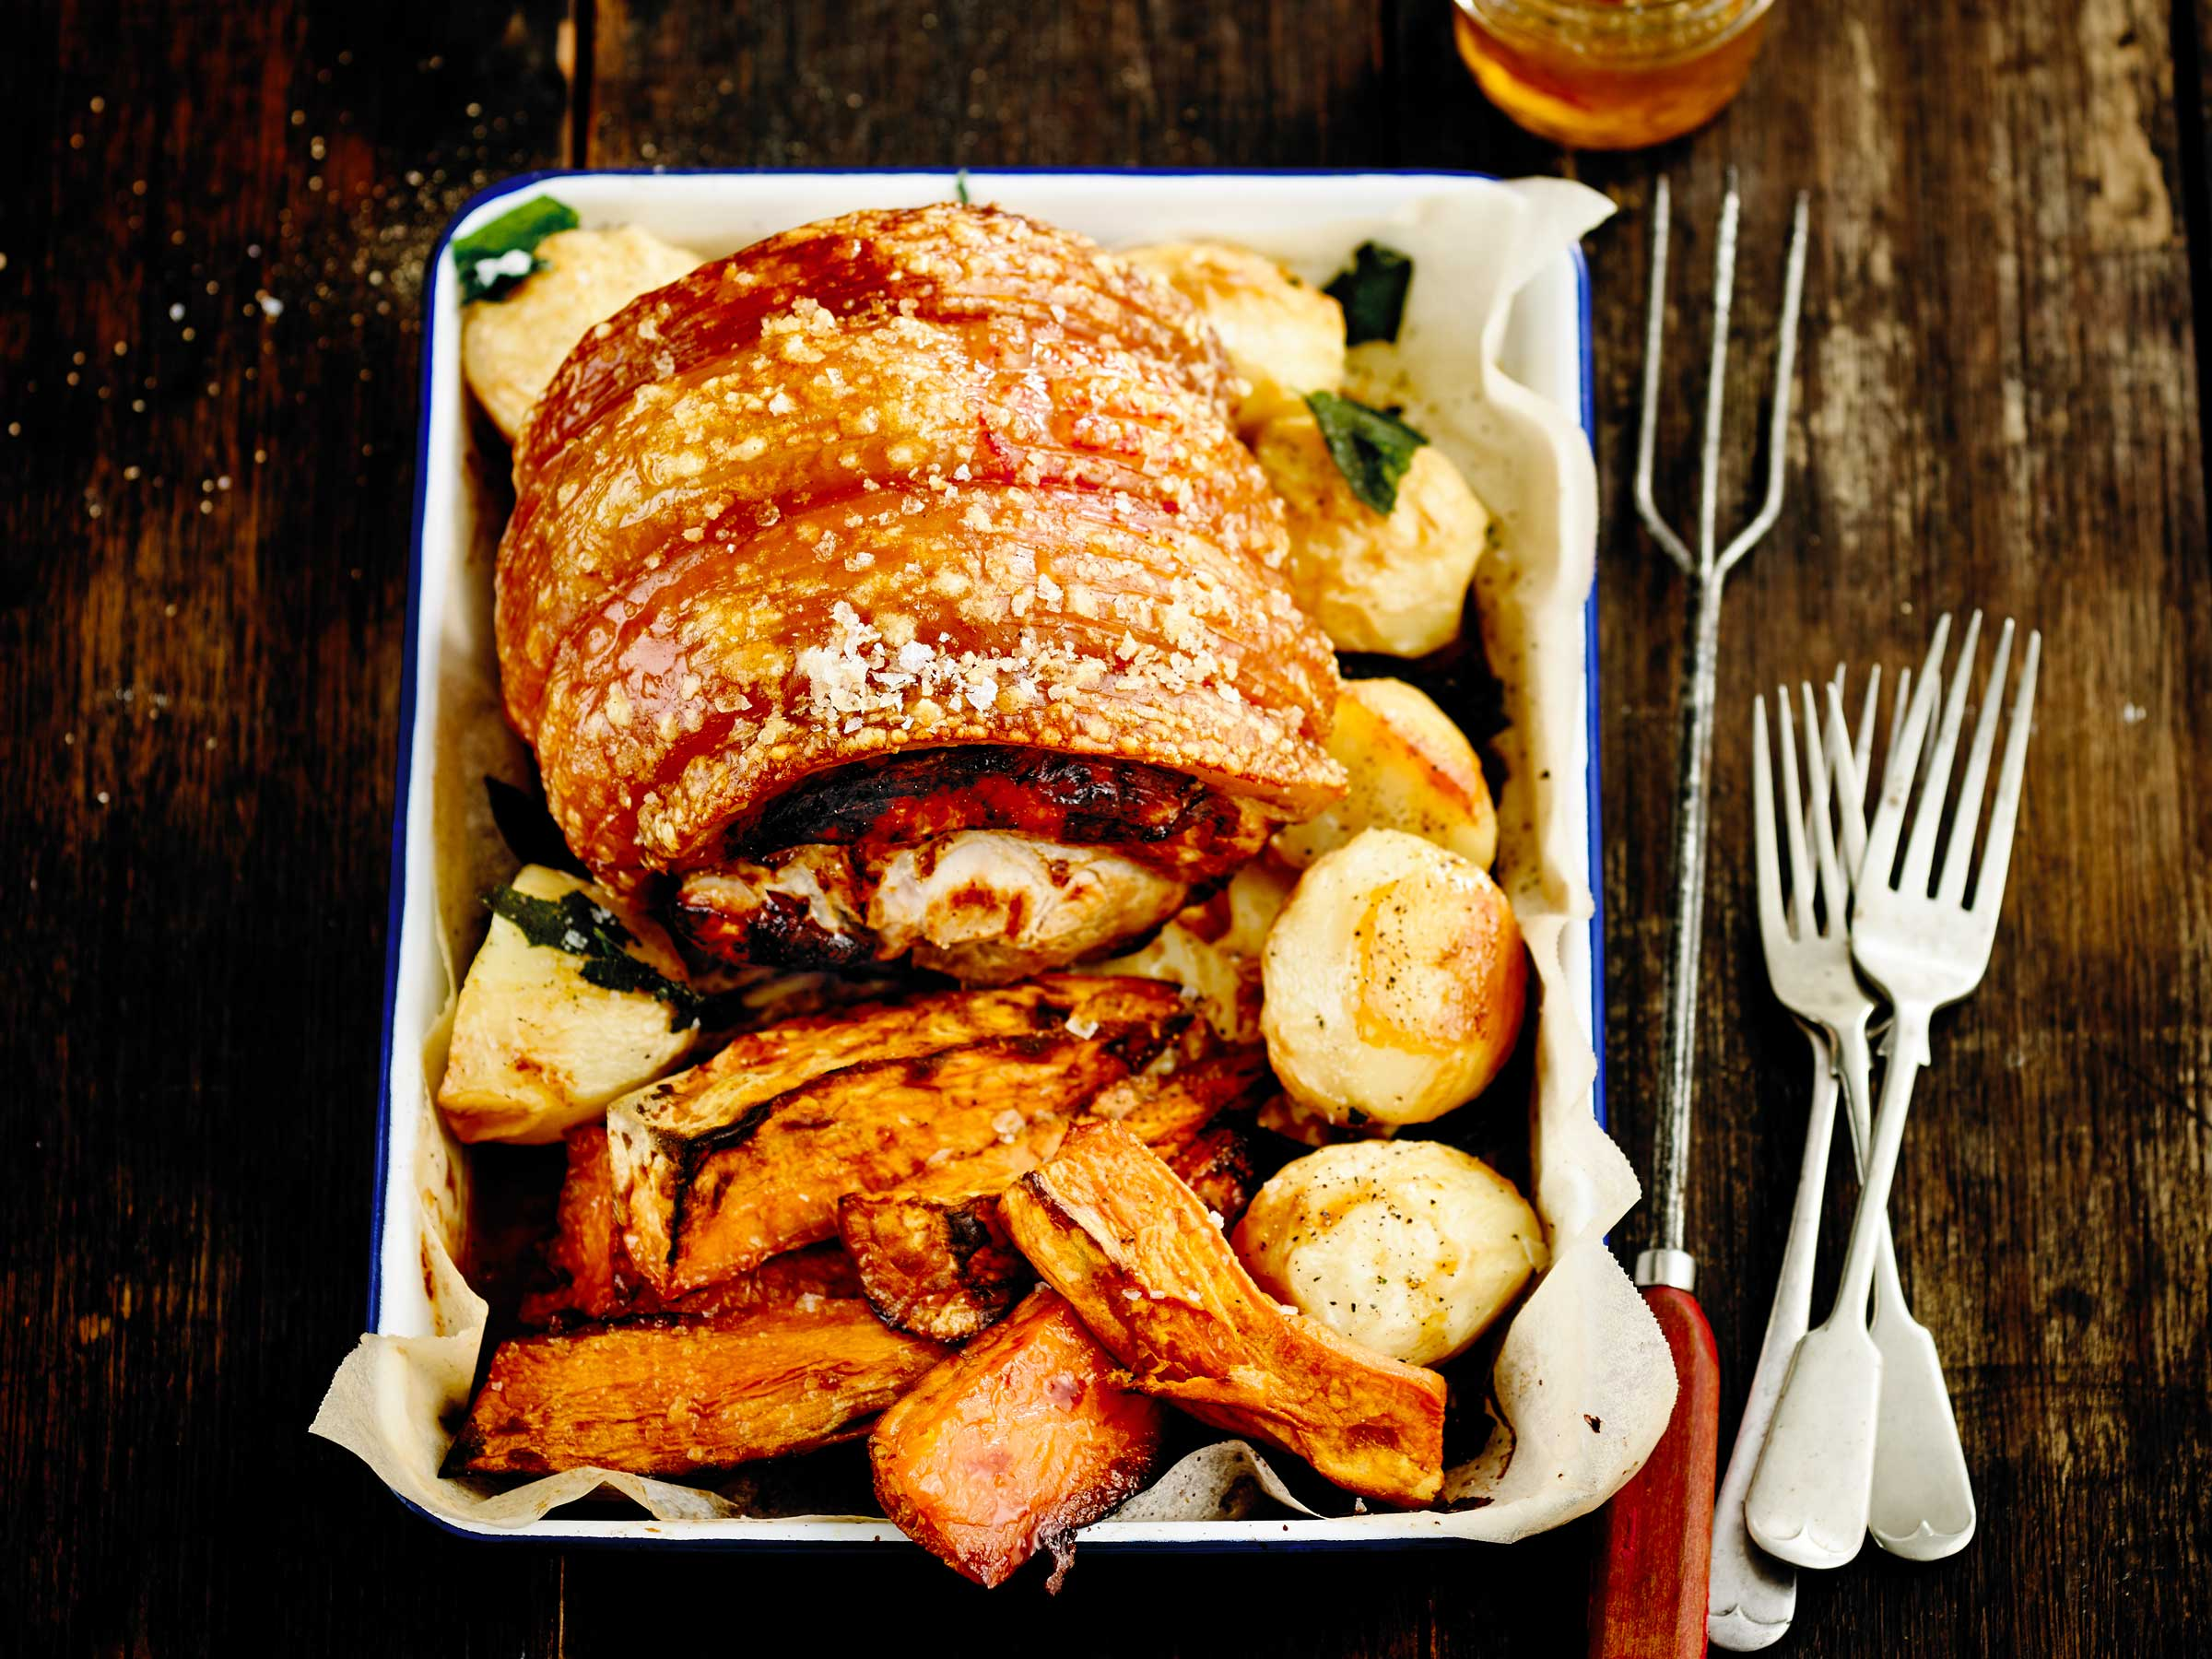 crackling day Roast pork with perfect crackling and apple sauce recipe at waitrosecom visit the waitrose website for more pork and roast recipes and ideas.